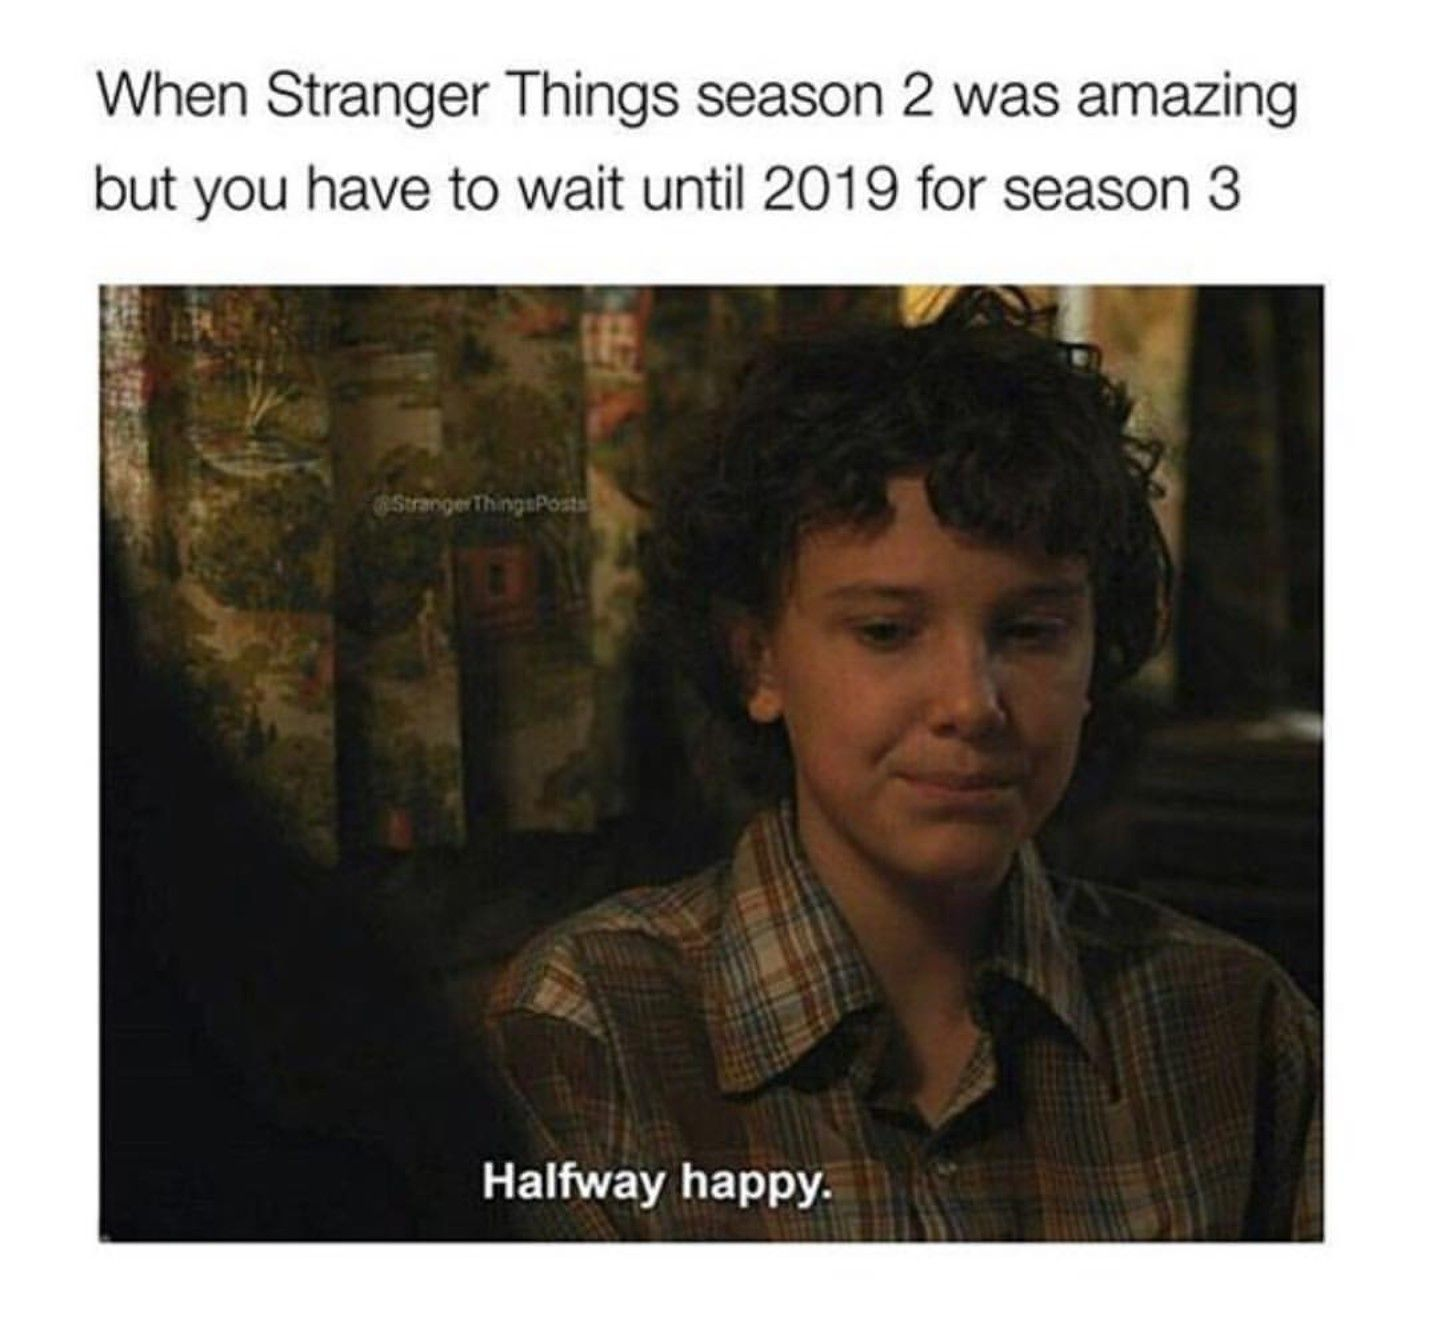 When you couldn't wait for season two to come out, now we're already waiting for season 3 as season 2 literally came out this month lol. I wonder what'll happen in the next season. It seems that they closed the gate, meaning the shadow monster is gone. Or is it? Idk